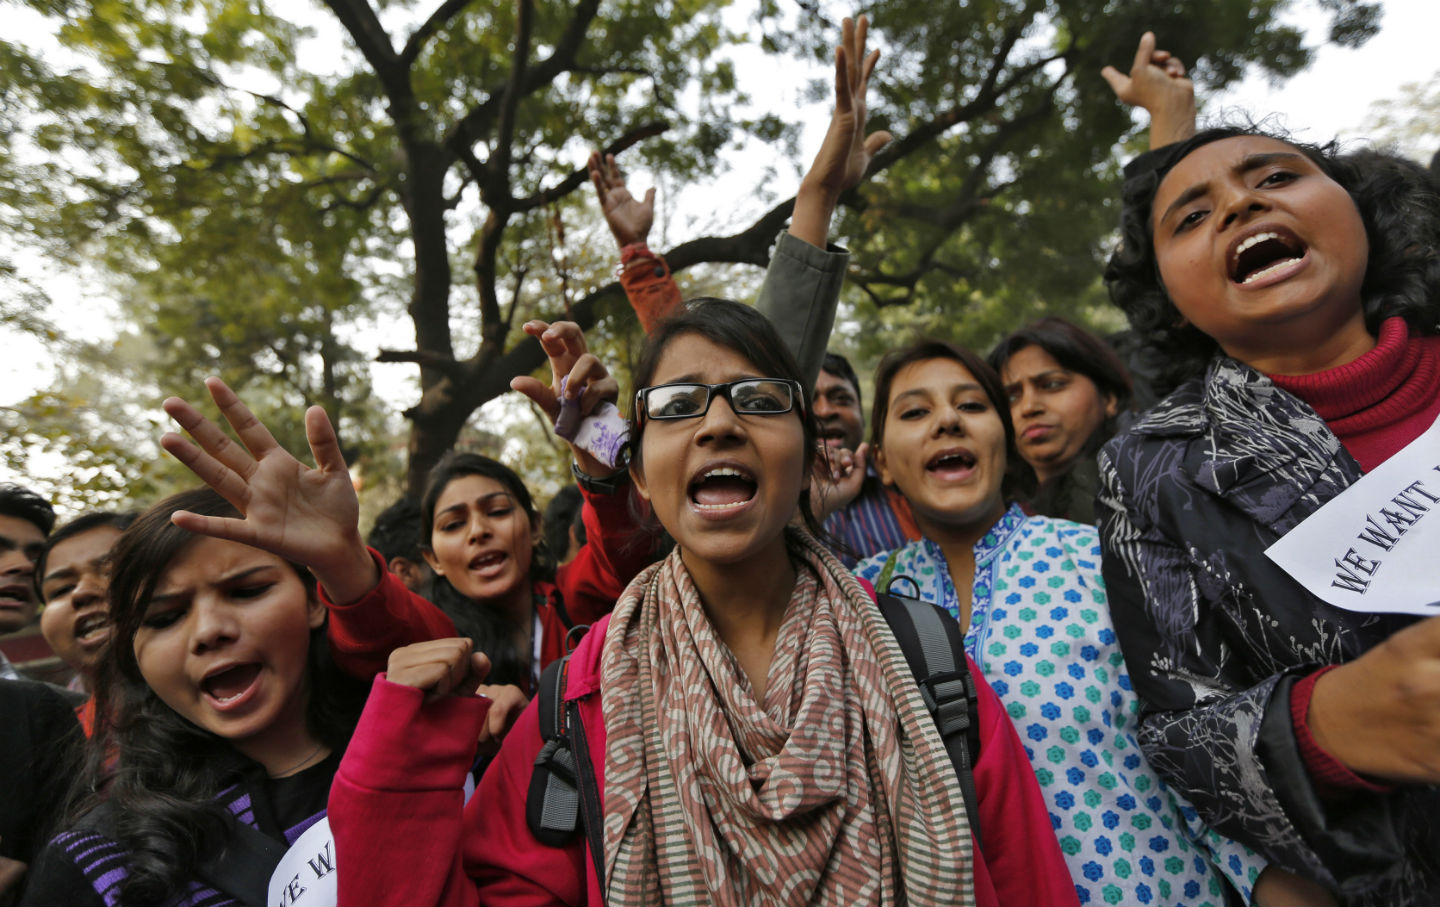 India Has Been Consistently Unsafe for Women But They Are Also Speaking Out